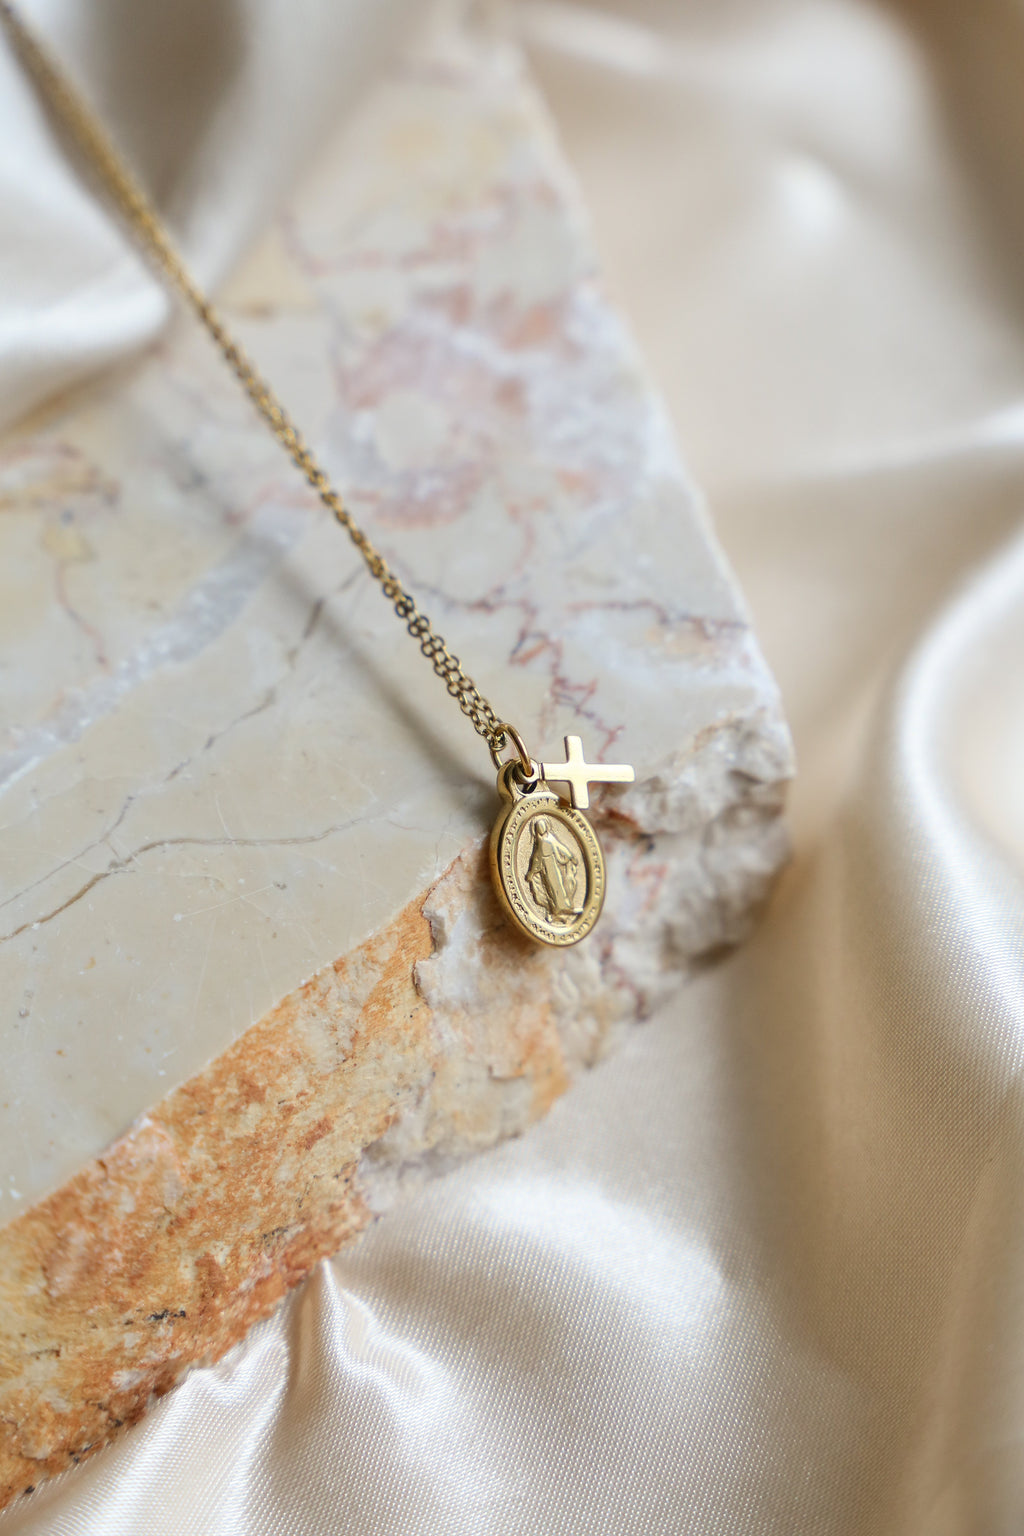 Virgin Mary Cross Necklace - Boutique Minimaliste